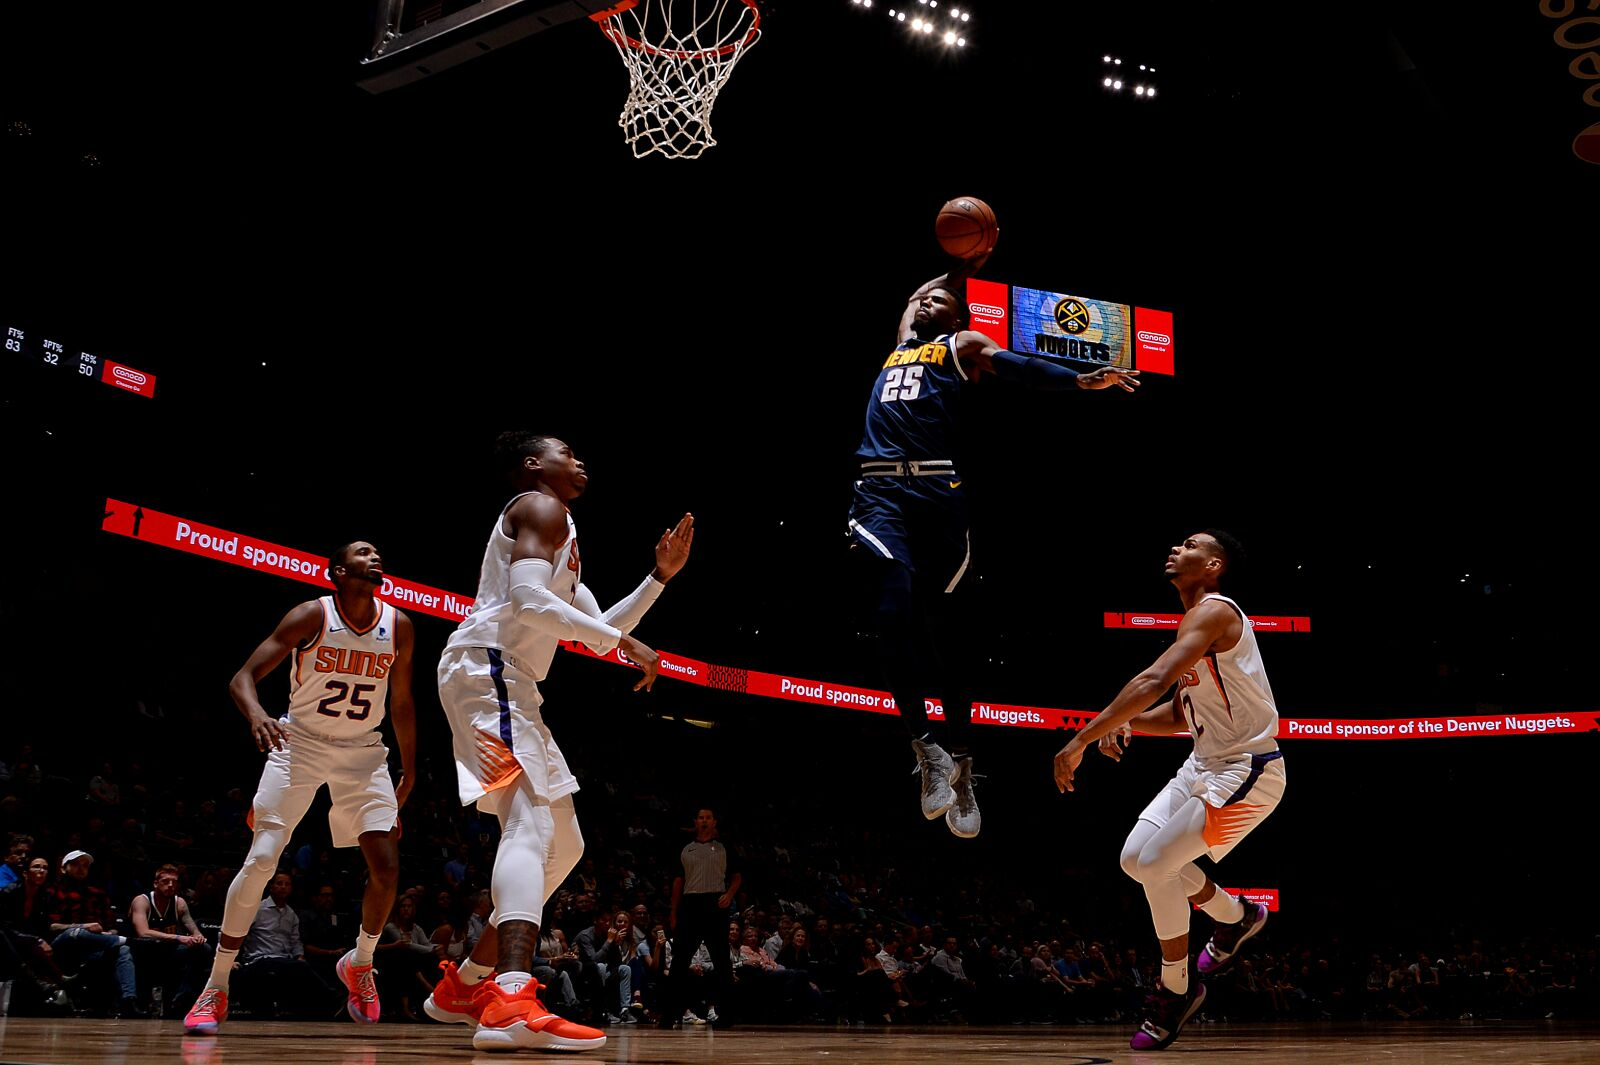 Phoenix Suns Denver Nuggets (Photo by Bart Young/NBAE via Getty Images)